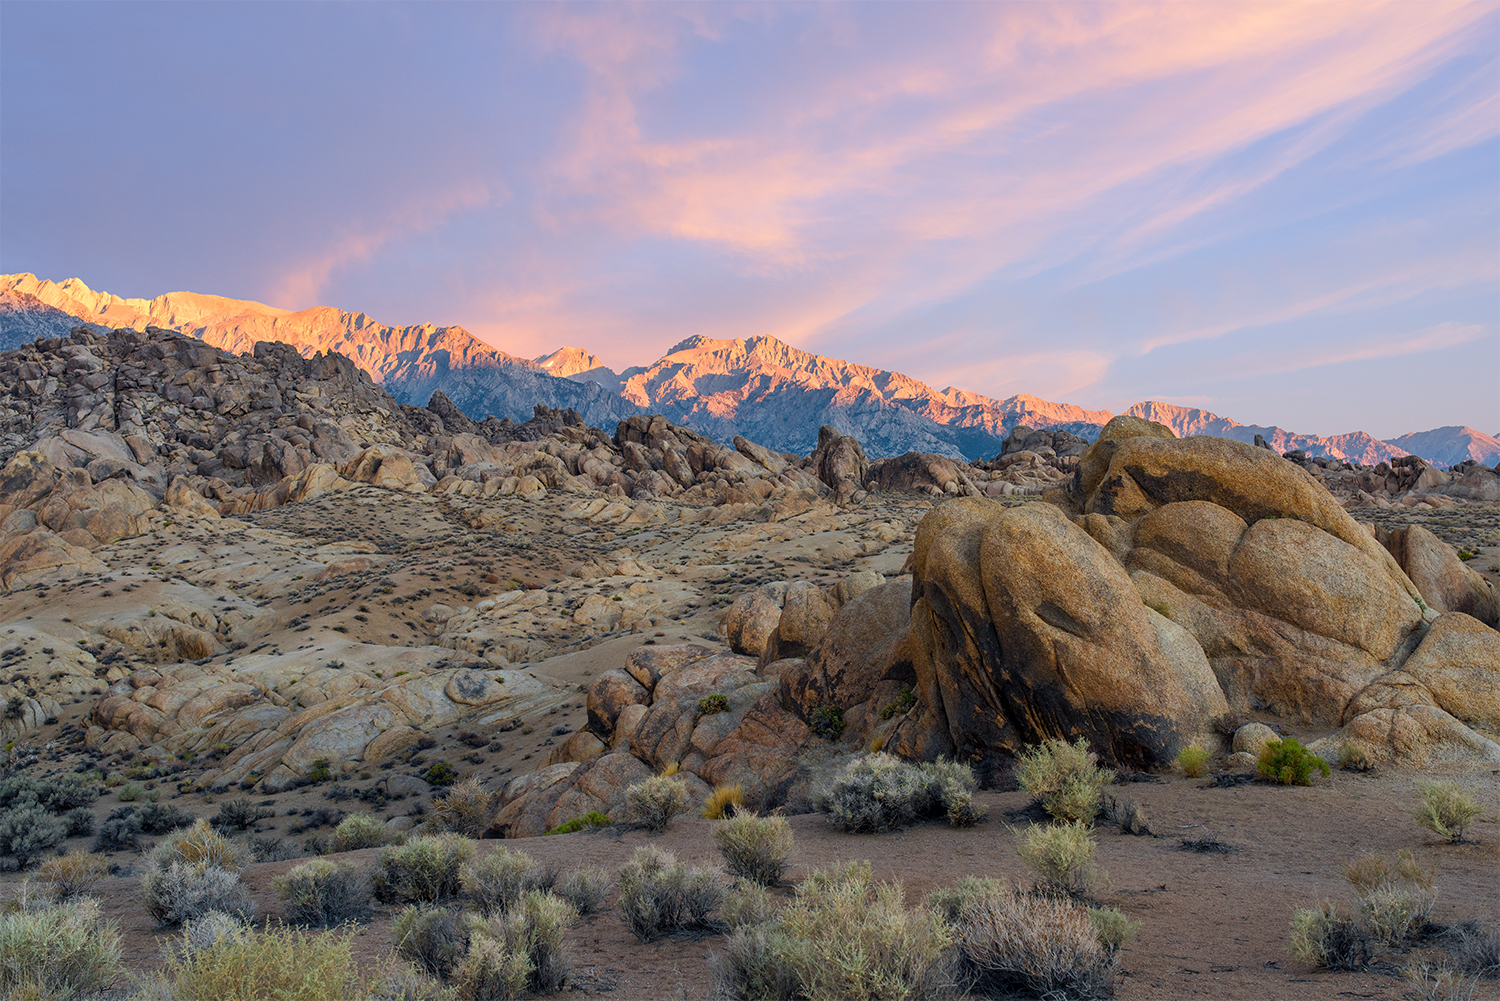 AlabamaHills_Sunrise2.jpg